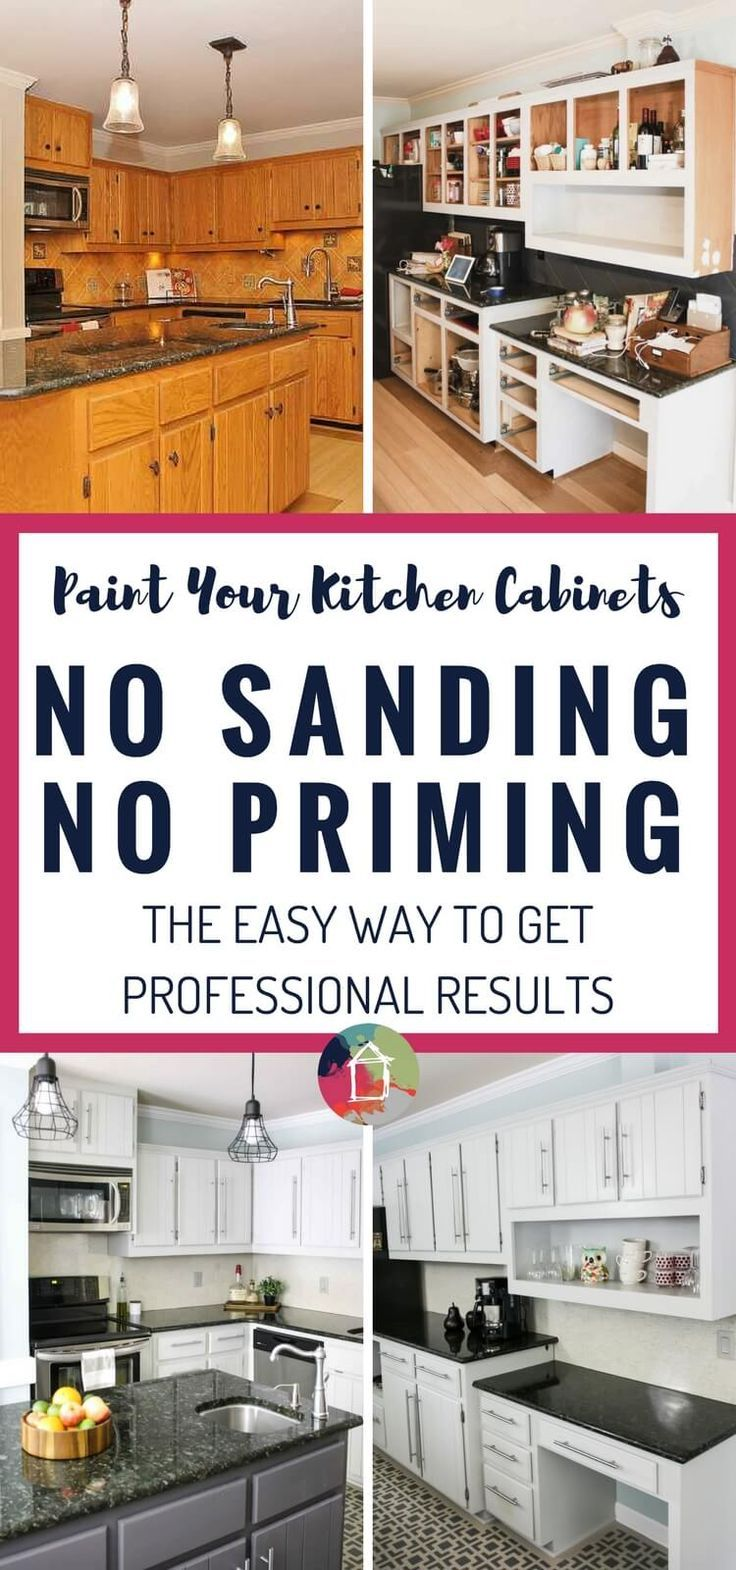 Home Decor Inspiration How To Paint Kitchen Cabinets